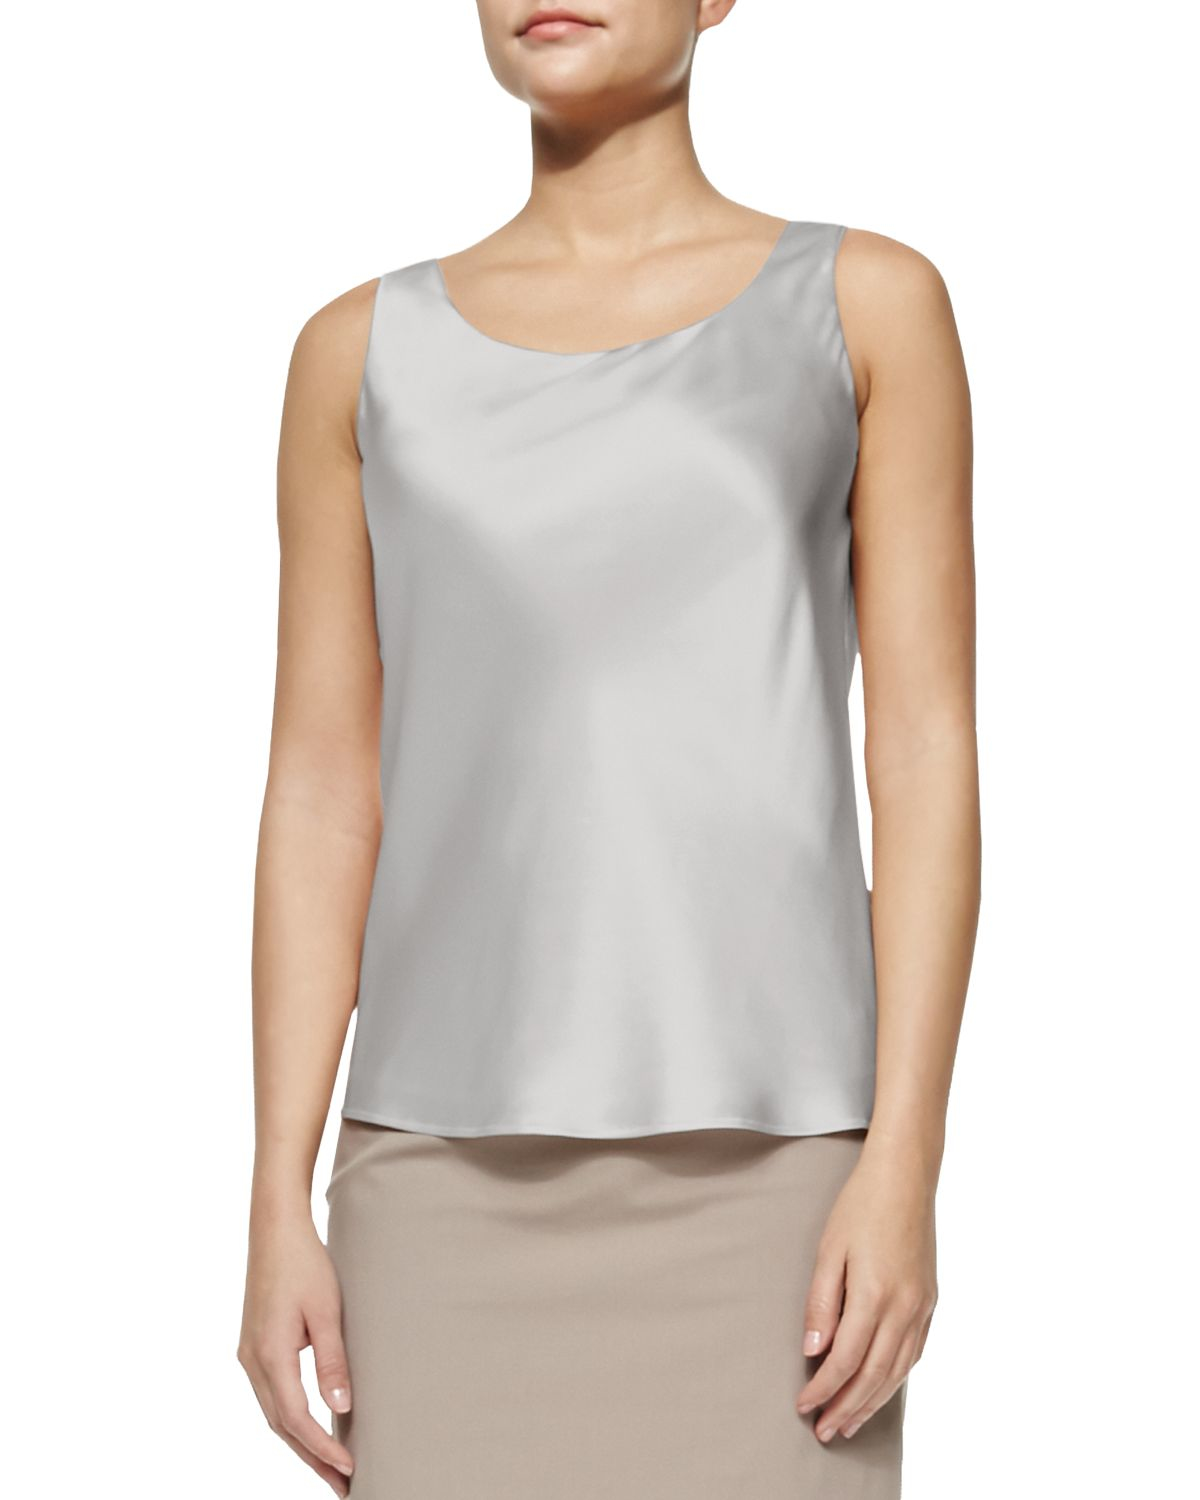 148 Best Images About Craft Ideas For Girls On Pinterest: Lafayette 148 New York Silk Tank Top In Gray